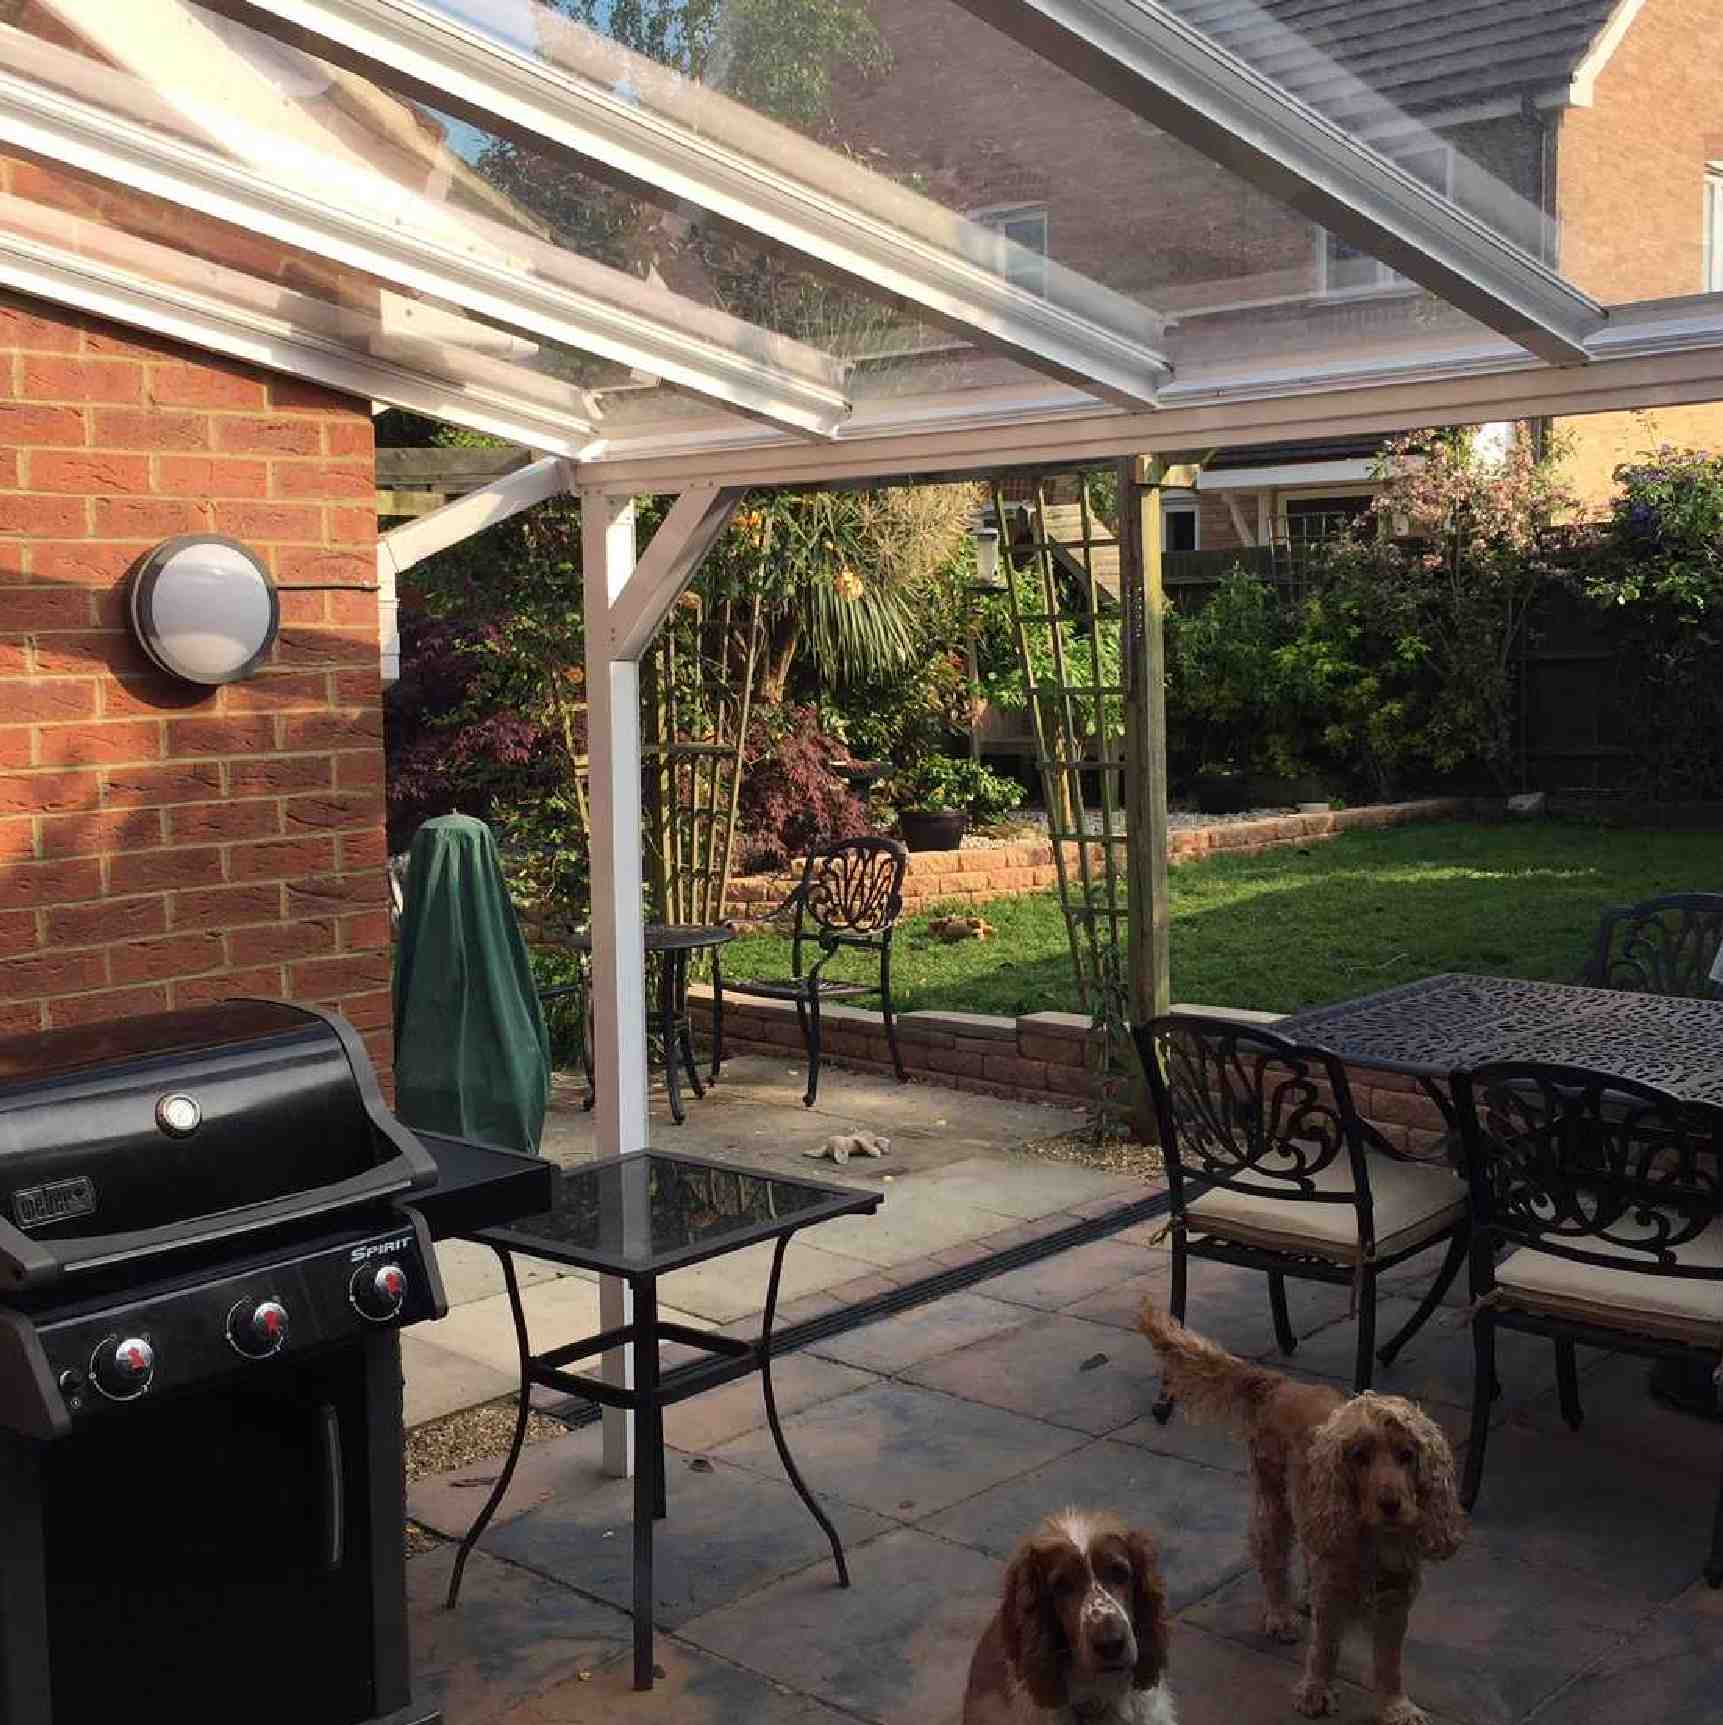 Omega Verandah with 16mm Polycarbonate Glazing - 4.8m (W) x 4.5m (P), (3) Supporting Posts